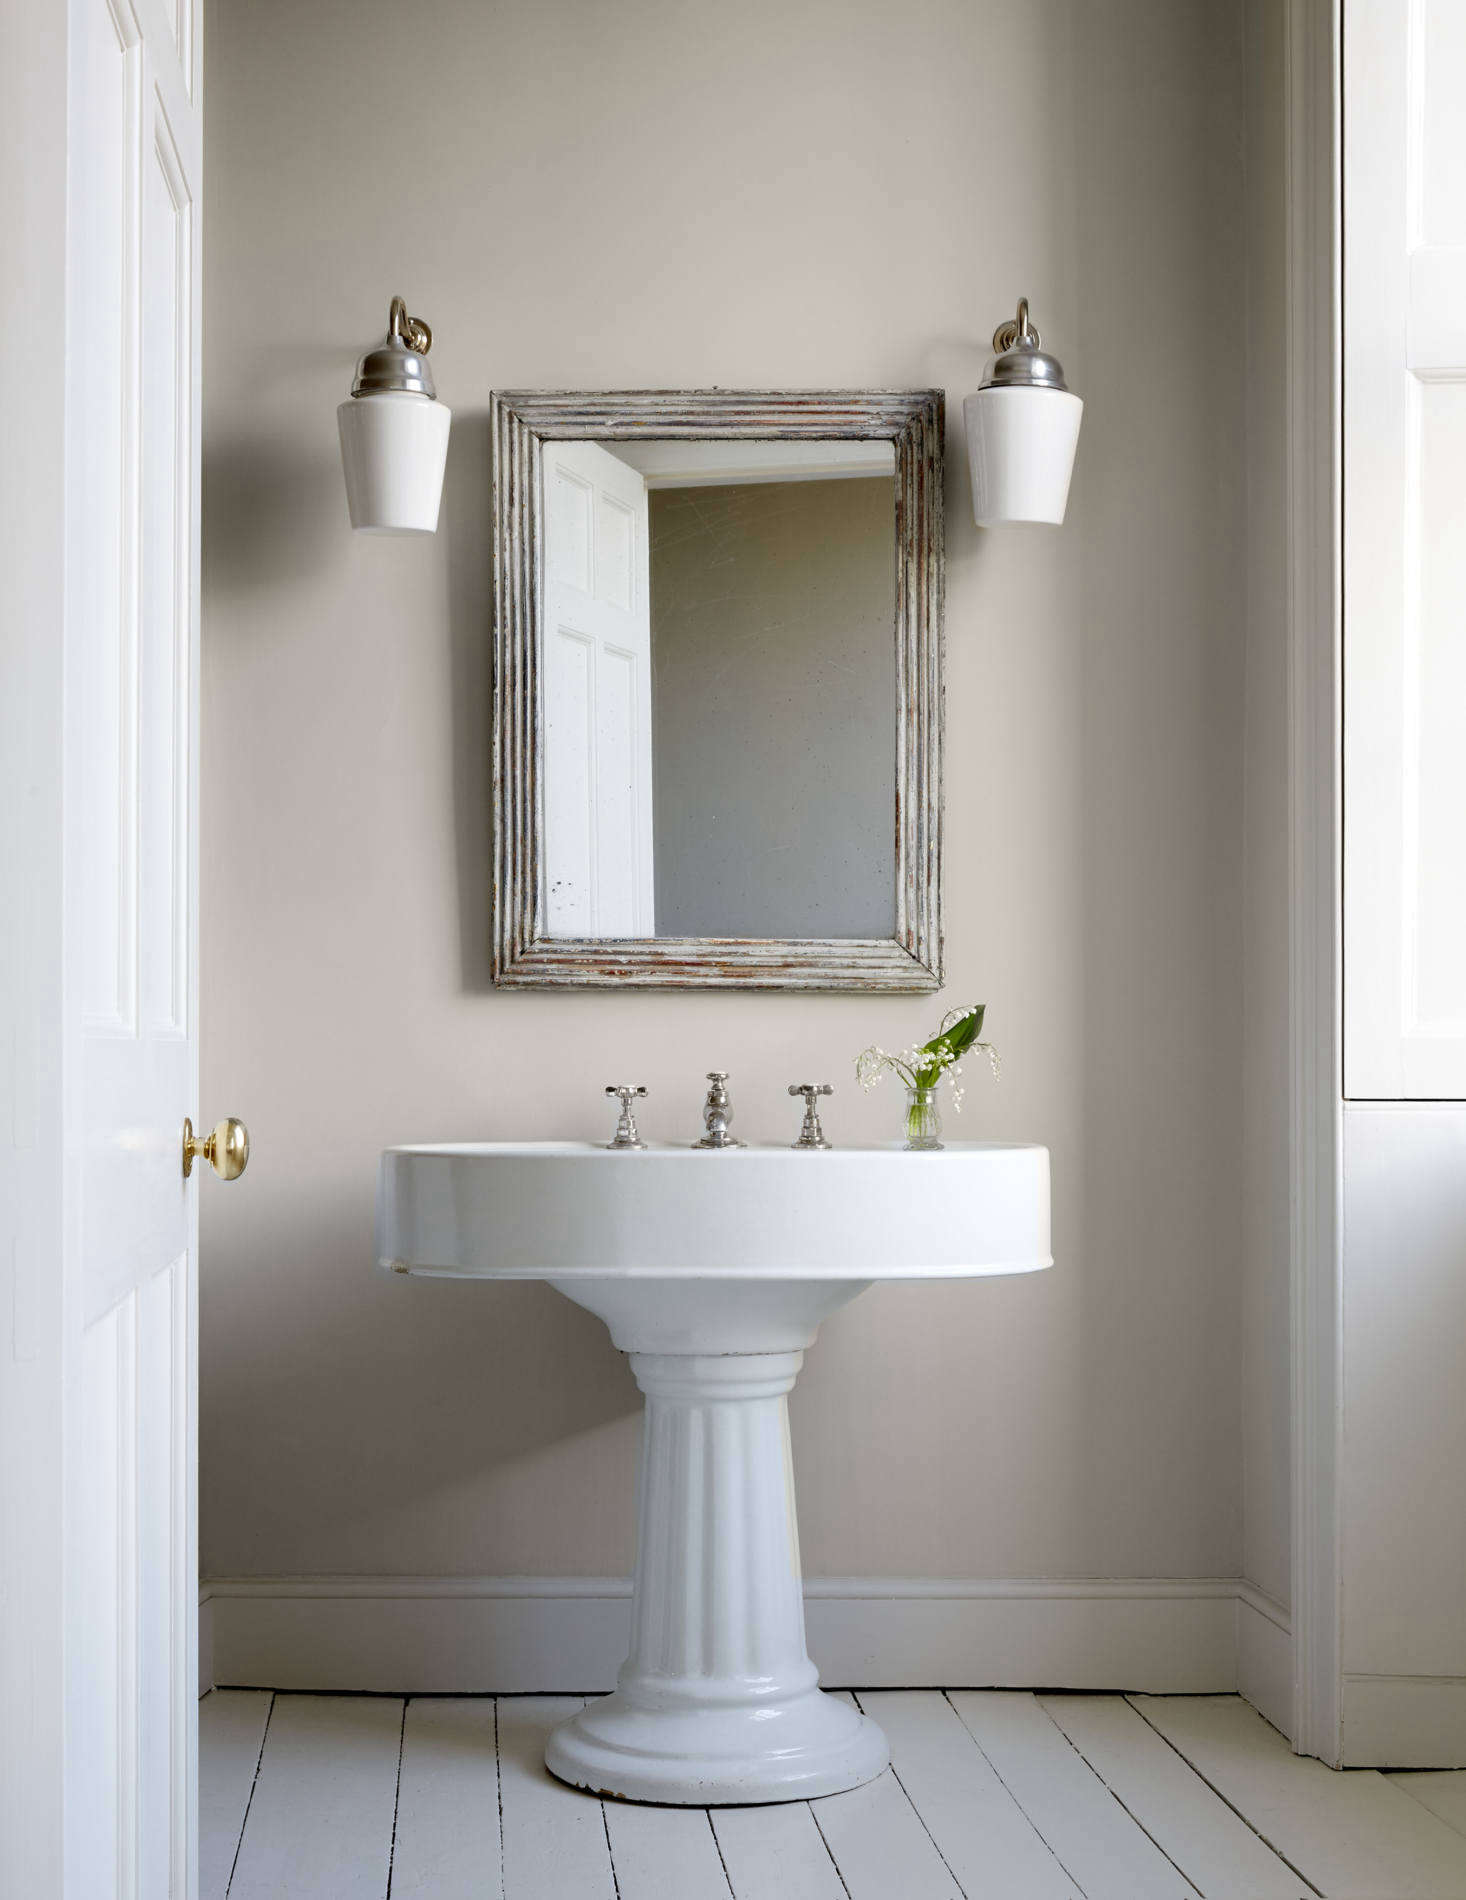 The master bath's stately sink came from a reclamation yard. The mirror is also antique and the Bone China Wall Lights are from Felix Lighting.